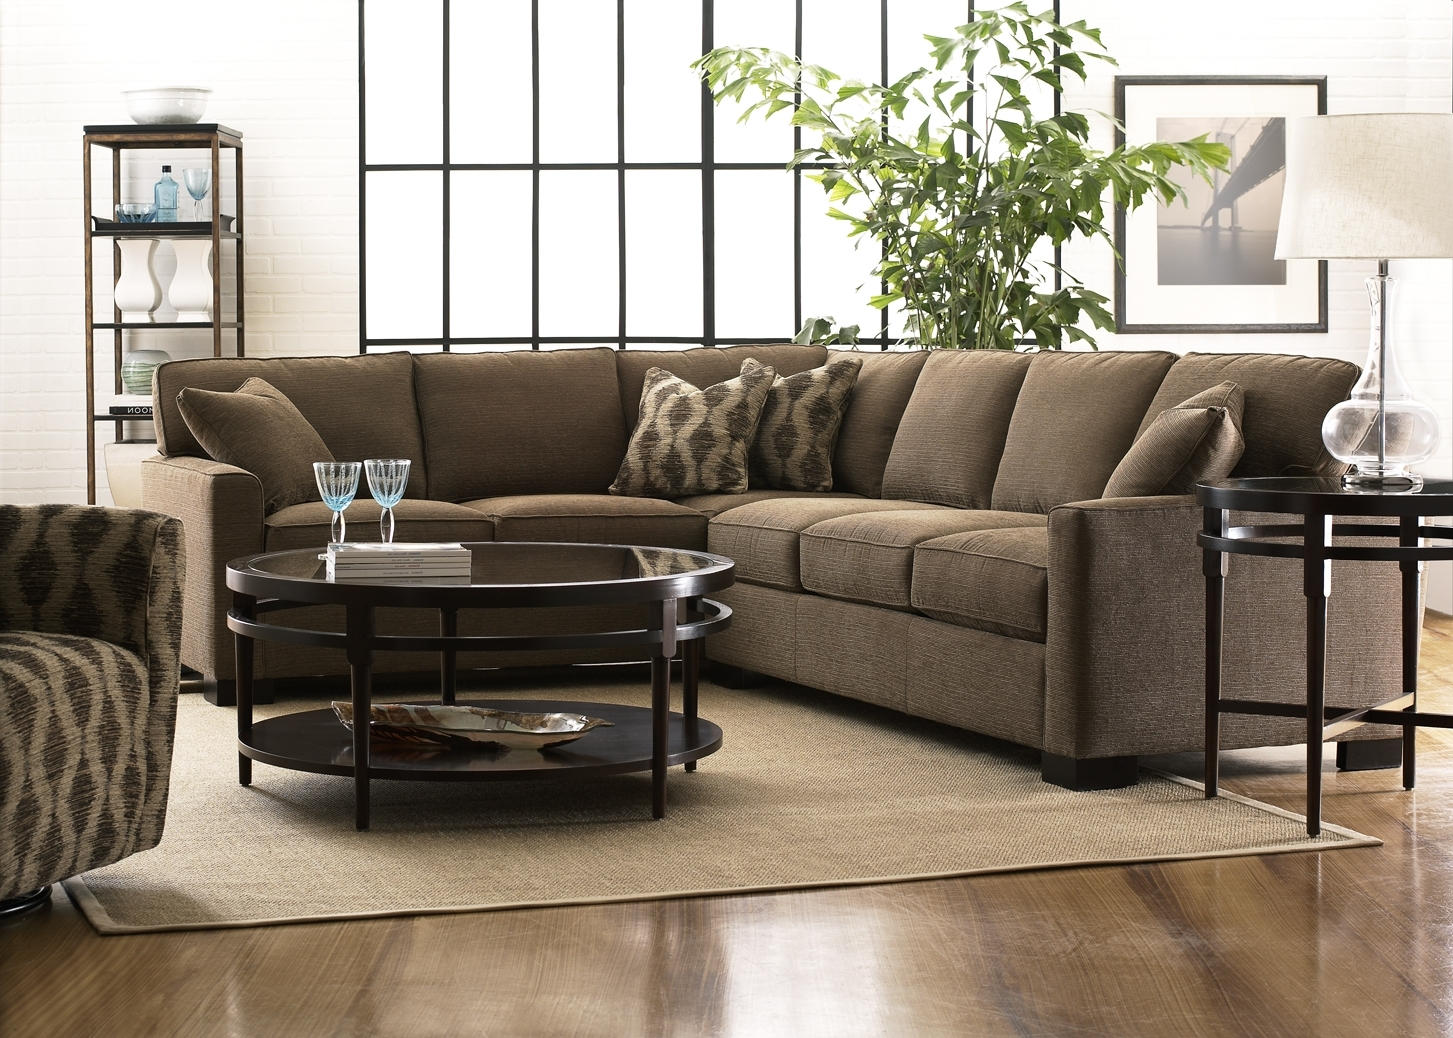 Most Current Sectional Sofas For Small Living Rooms With Regard To Dining Room Furniture Small Spaces Apartment Sized Furniture (View 4 of 20)